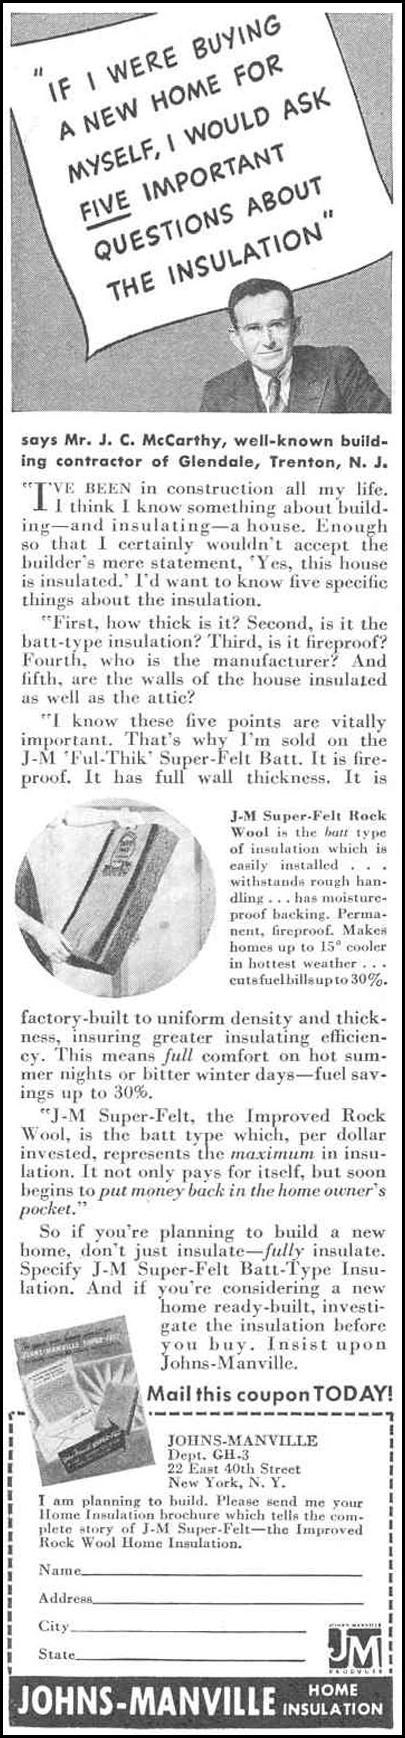 HOME INSULATION GOOD HOUSEKEEPING 03/01/1940 p. 168